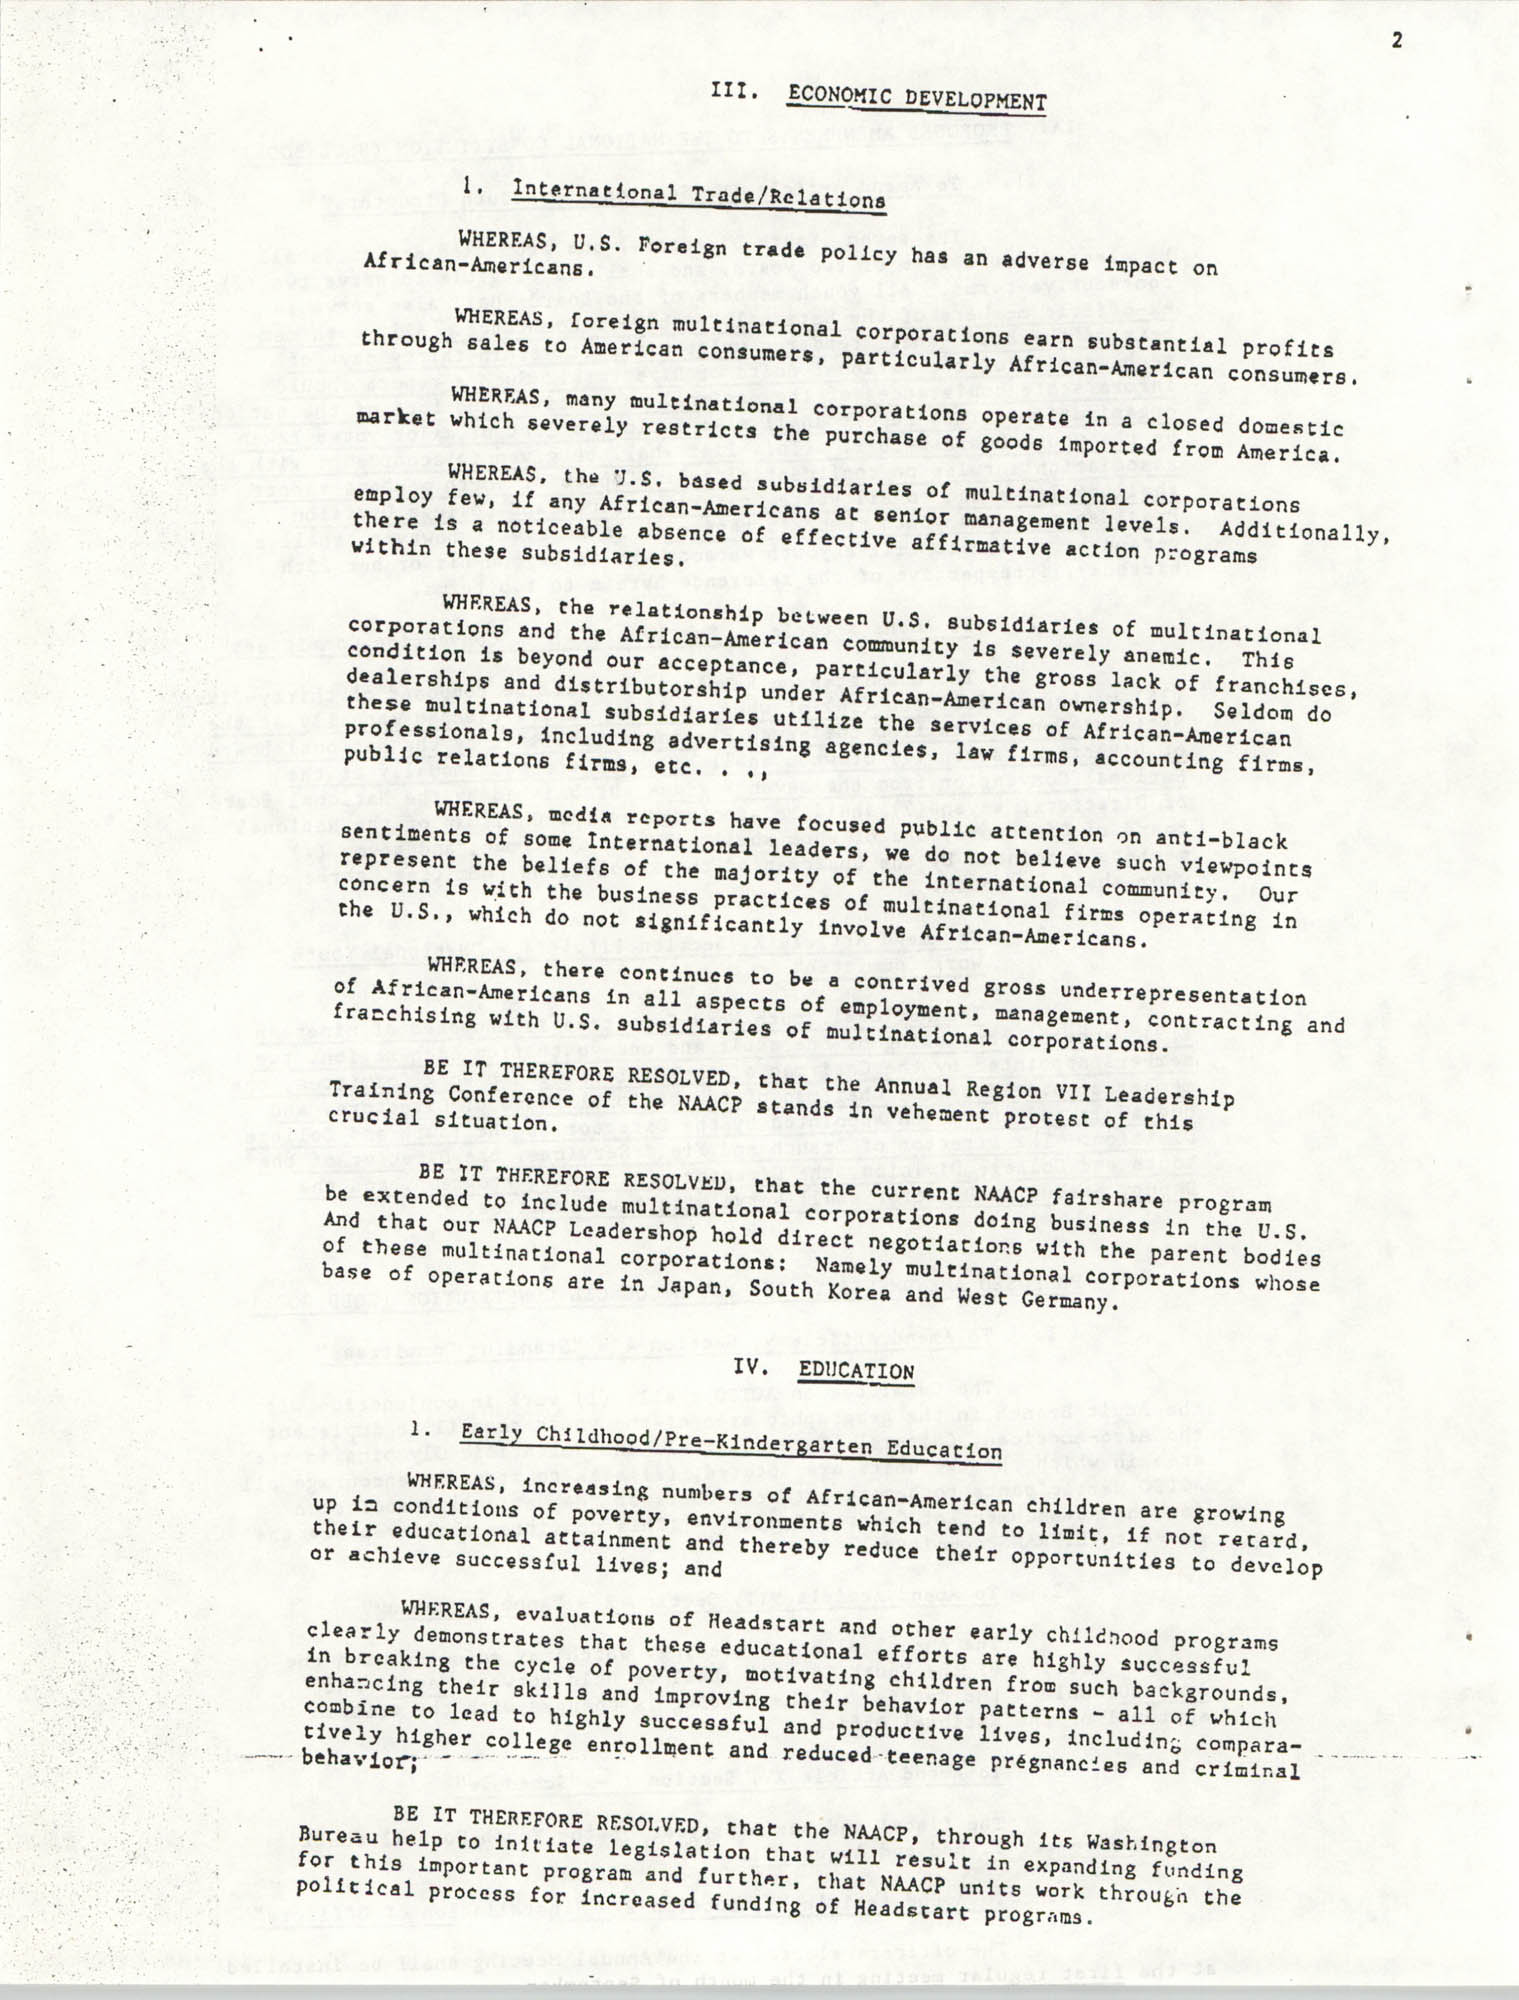 Resolutions Submitted Under Article X, Section 2 of the Constitution of the NAACP, Page 2